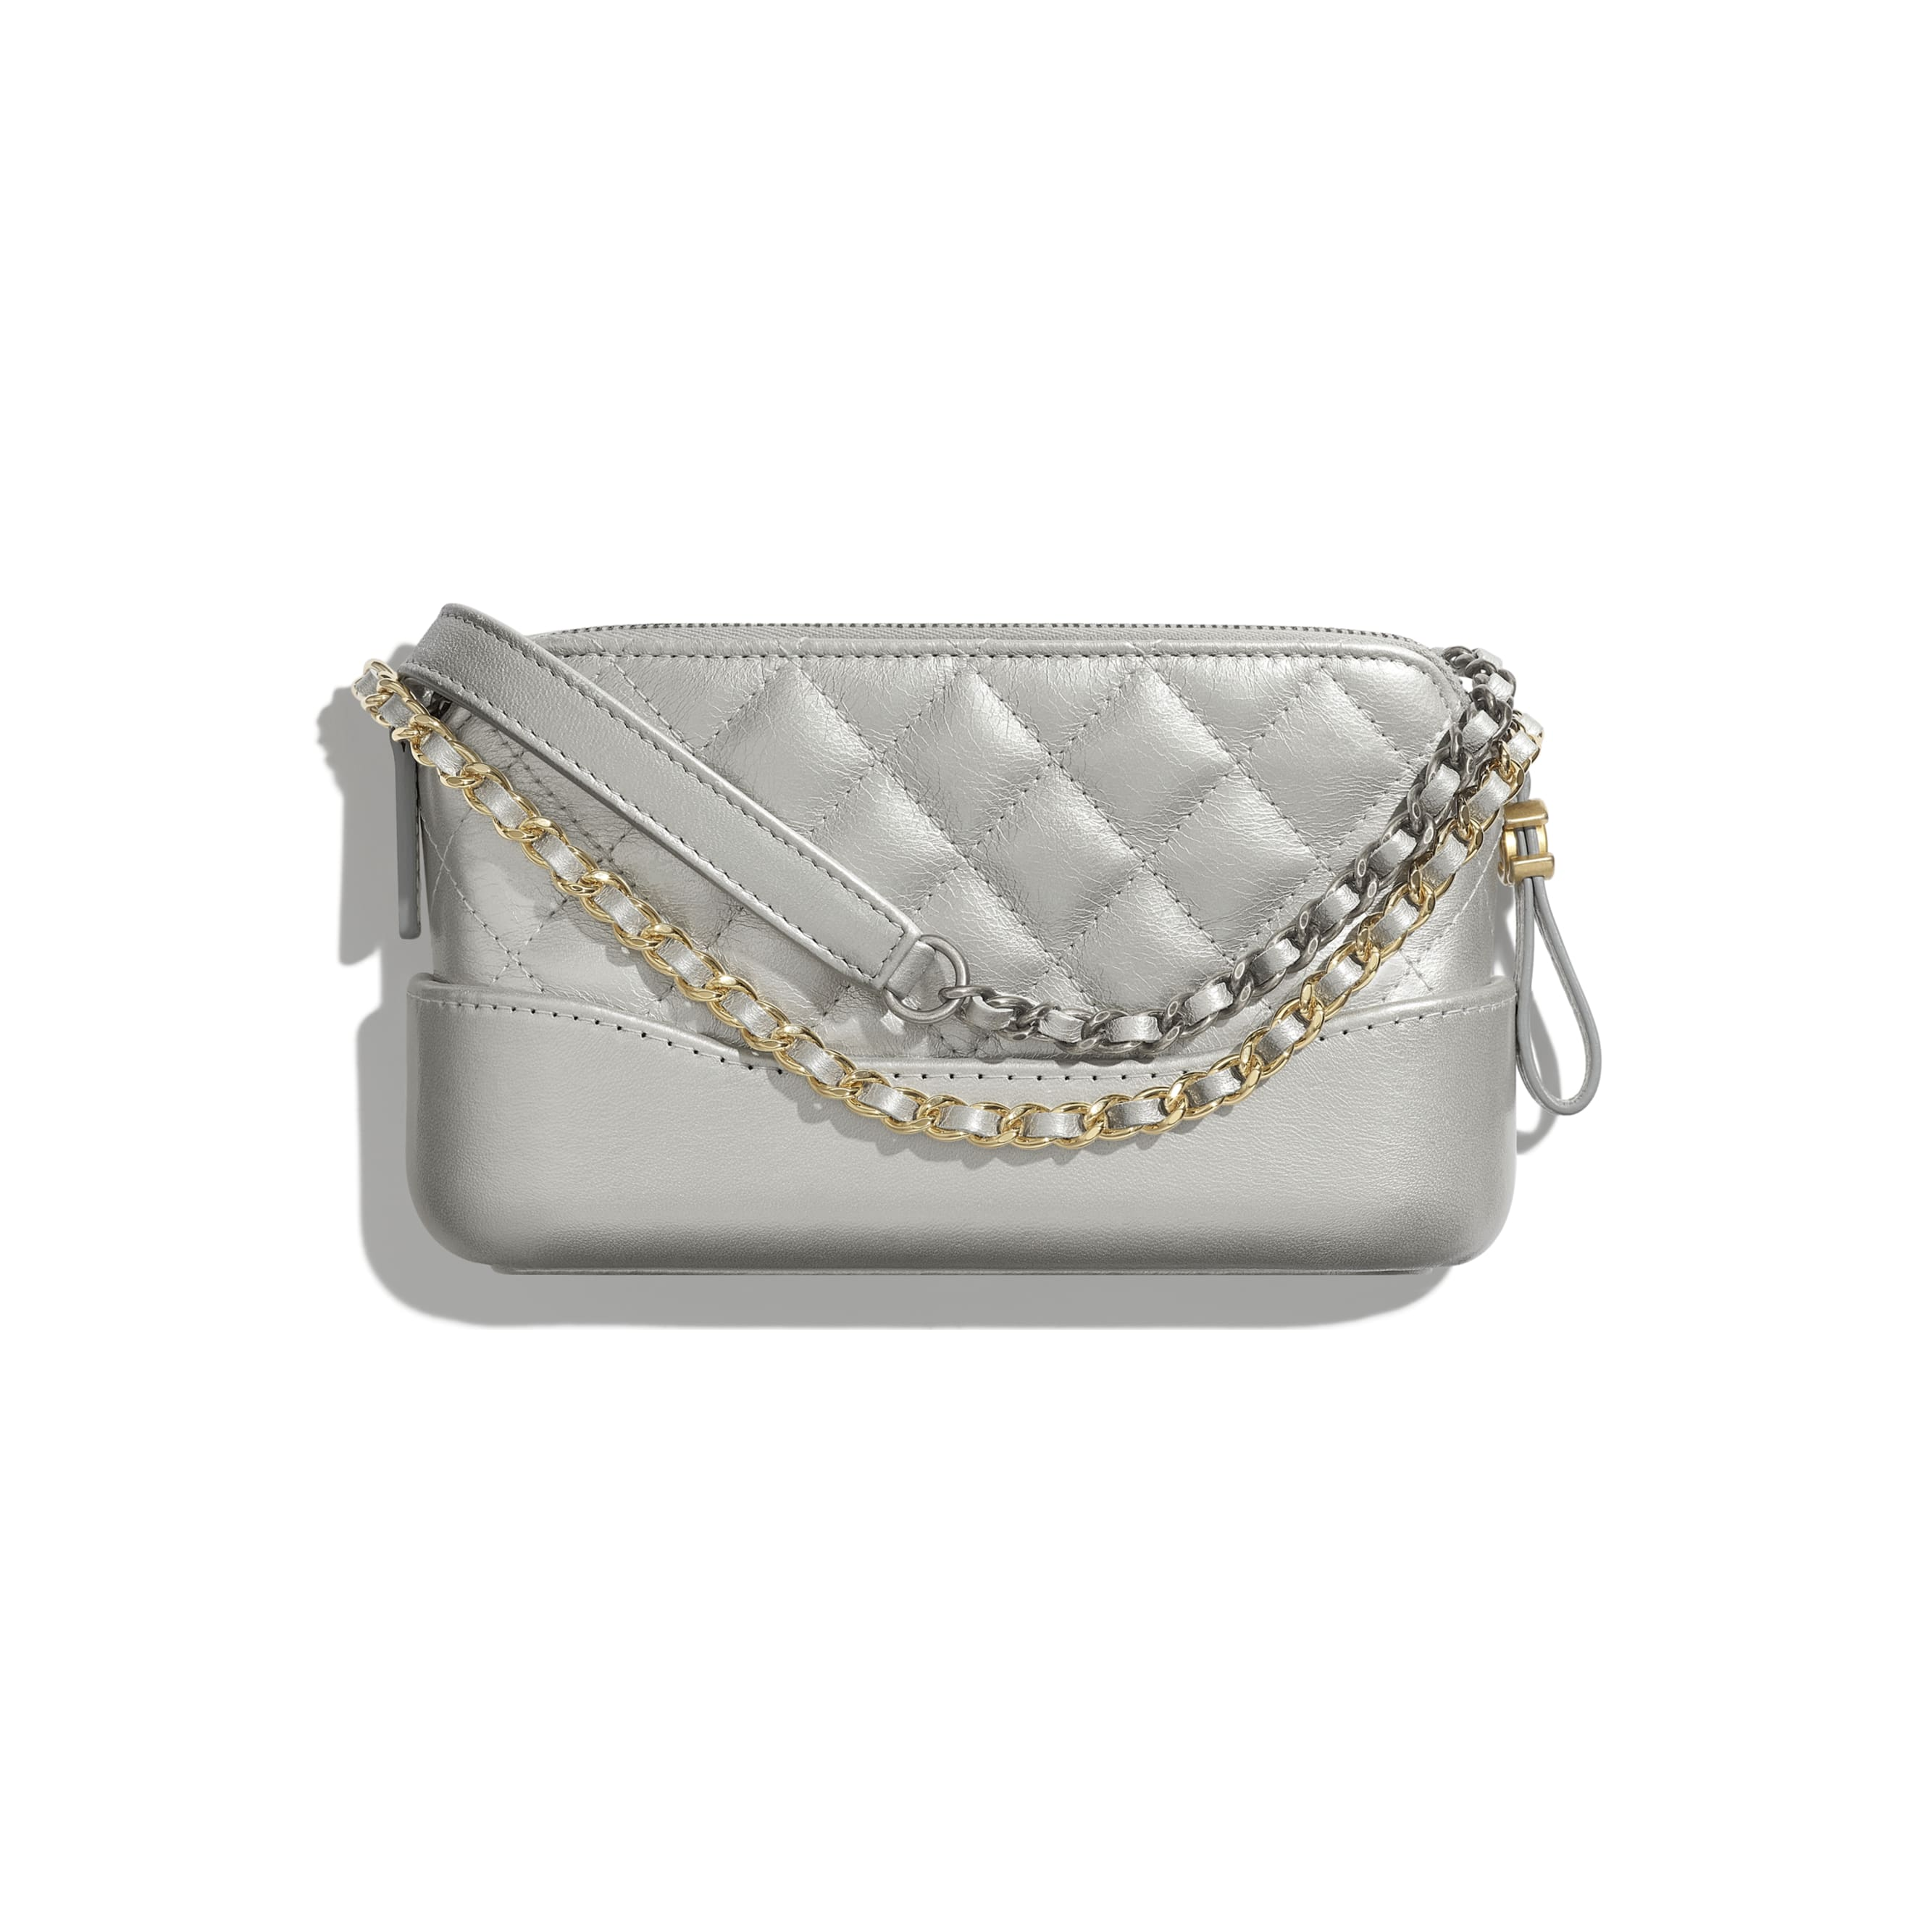 Clutch With Chain - Silver - Metallic Crumpled Lambskin, Calfskin, Gold-Tone & Silver-Tone Metal - Alternative view - see standard sized version